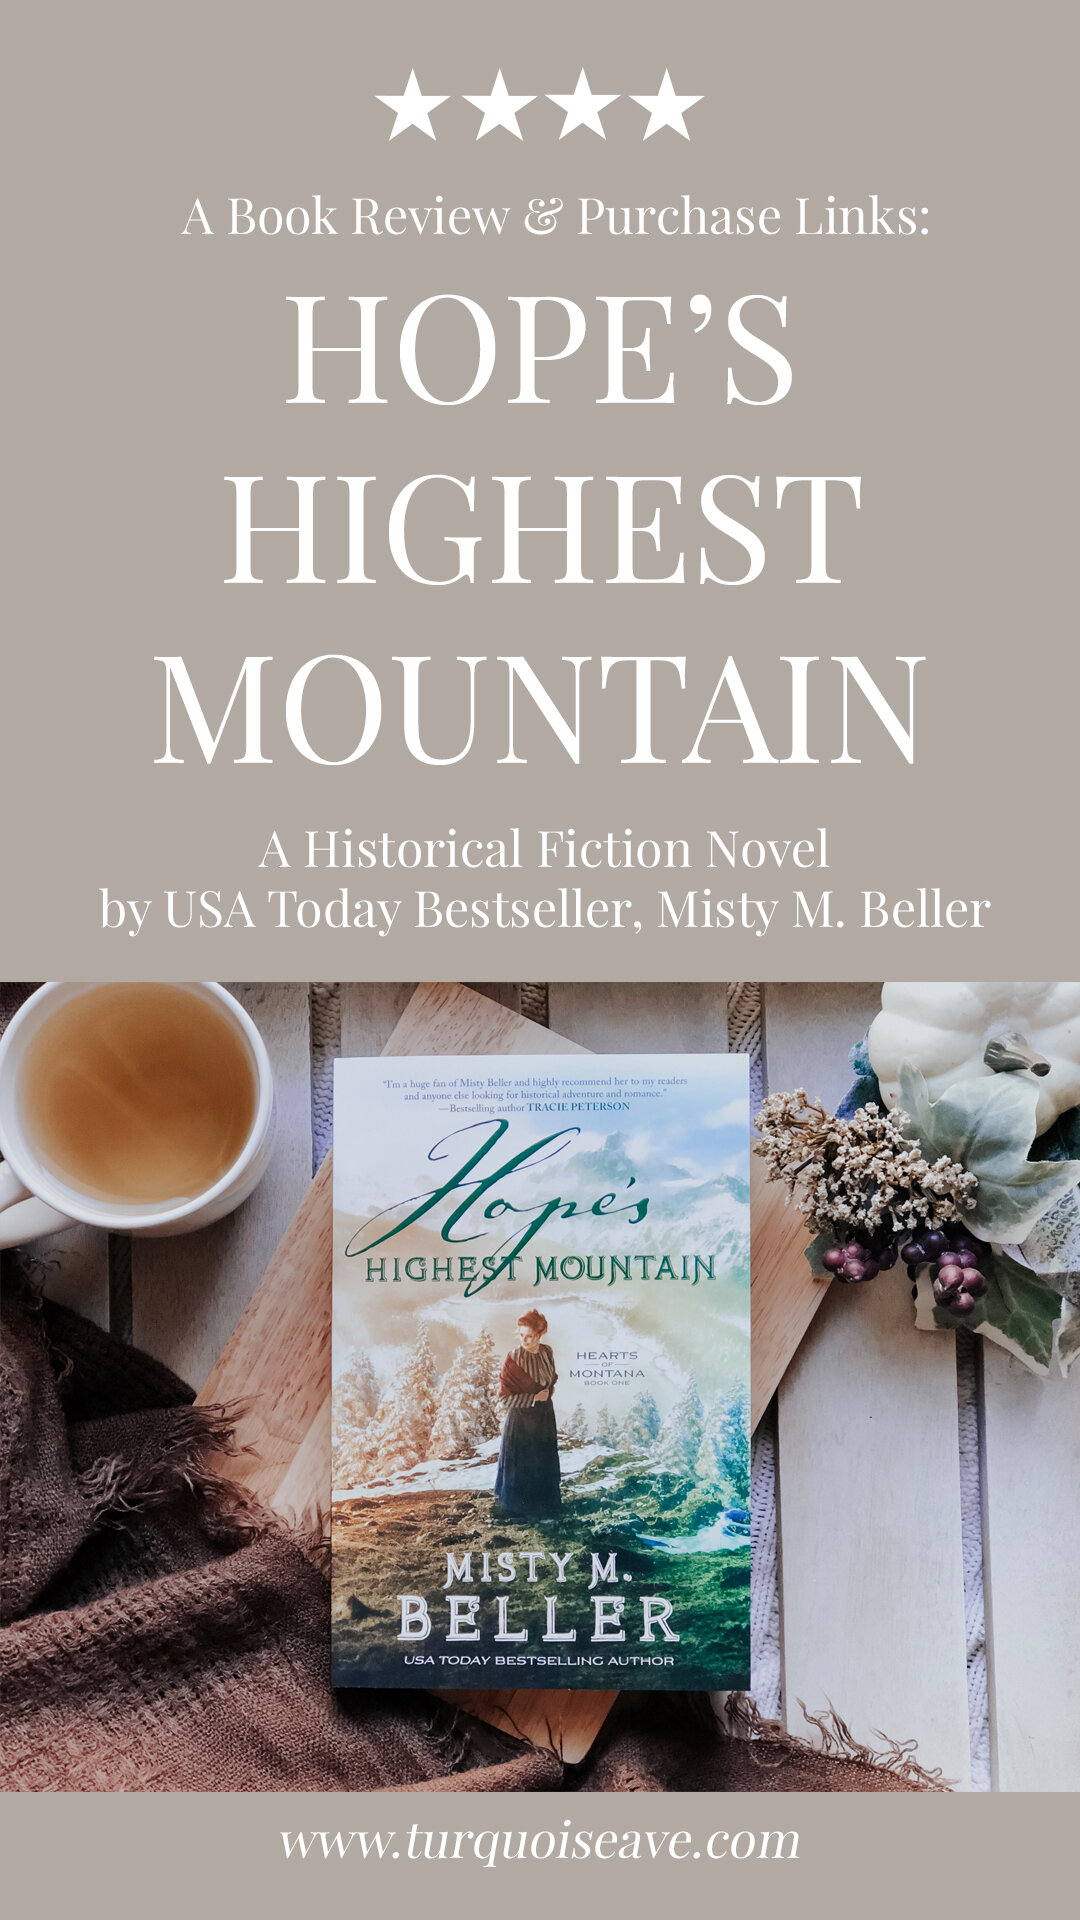 A ★★★★  Book Review of Hope's Highest Mountain by Misty M. Beller, Book One in the Hearts of Montana Series |  A Romantic, Historical Fiction Novel